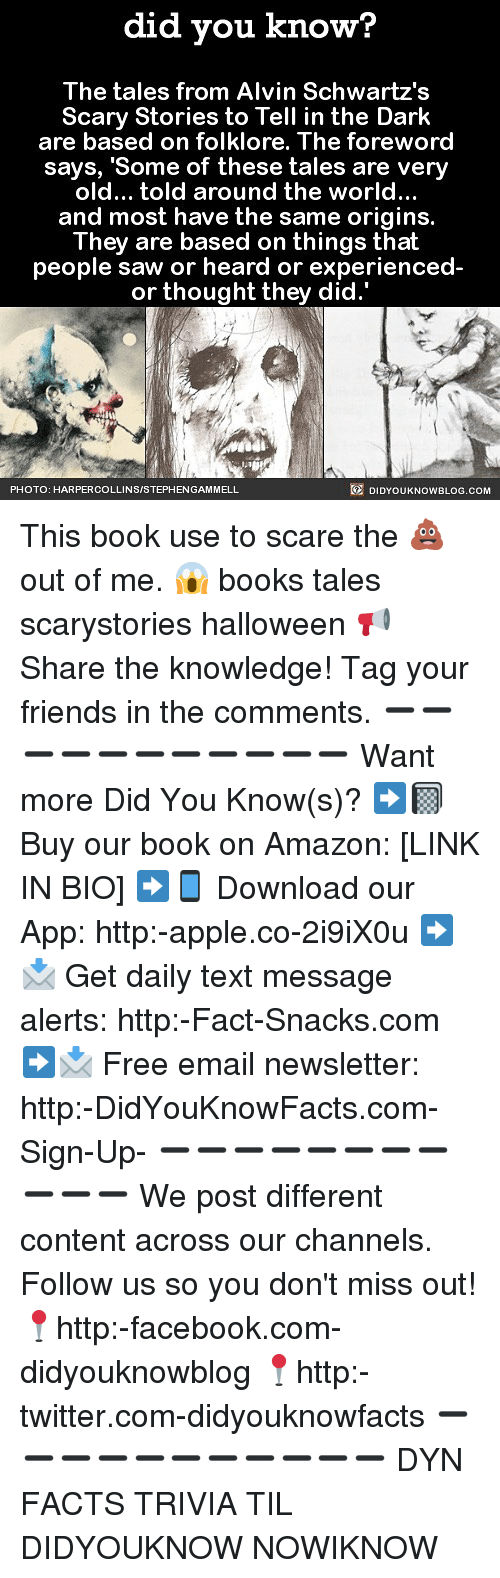 Amazon, Apple, and Books: did you know?  The tales from Alvin Schwartz's  Scary Stories to Tell in the Dark  are based on folklore. The foreword  says, 'Some of these tales are very  old... told around the world..  and most have the same origins.  They are based on things that  people saw or heard or experienced  or thought they did.'  PHOTO: HARPERCOLLINSISTEPHENGAMMELL  DIDYOUKNOWBLOG.cOM This book use to scare the 💩 out of me. 😱 books tales scarystories halloween 📢 Share the knowledge! Tag your friends in the comments. ➖➖➖➖➖➖➖➖➖➖➖ Want more Did You Know(s)? ➡📓 Buy our book on Amazon: [LINK IN BIO] ➡📱 Download our App: http:-apple.co-2i9iX0u ➡📩 Get daily text message alerts: http:-Fact-Snacks.com ➡📩 Free email newsletter: http:-DidYouKnowFacts.com-Sign-Up- ➖➖➖➖➖➖➖➖➖➖➖ We post different content across our channels. Follow us so you don't miss out! 📍http:-facebook.com-didyouknowblog 📍http:-twitter.com-didyouknowfacts ➖➖➖➖➖➖➖➖➖➖➖ DYN FACTS TRIVIA TIL DIDYOUKNOW NOWIKNOW